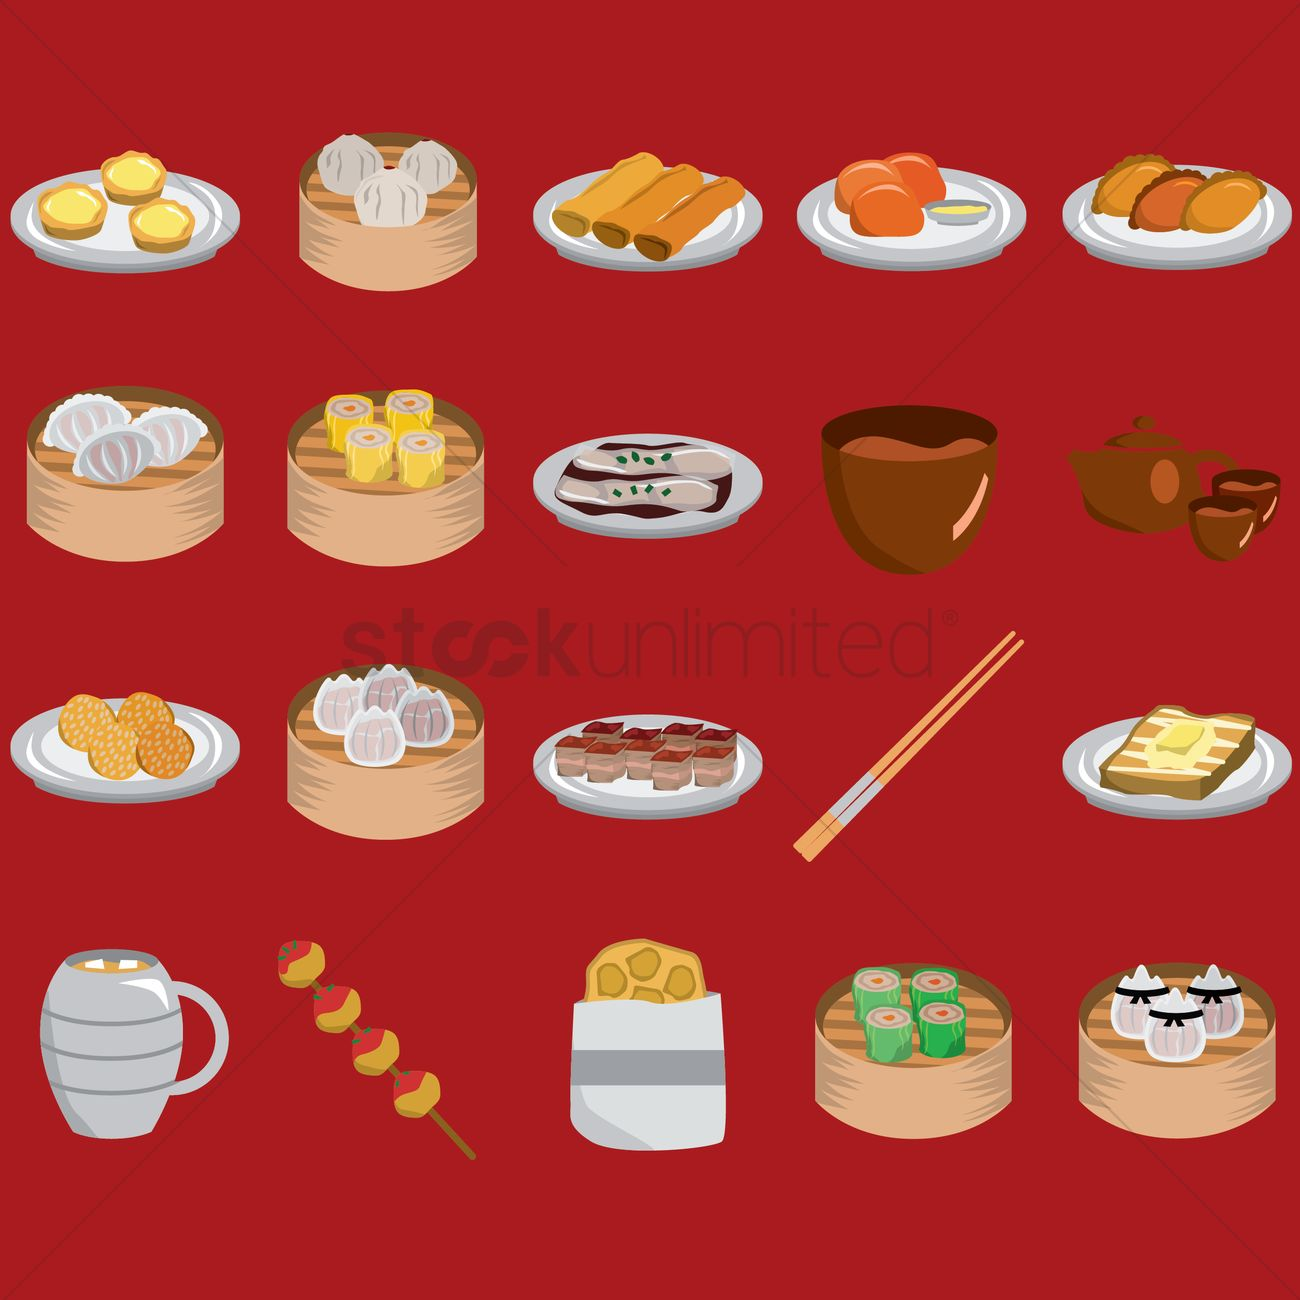 Hong kong popular food set vector image 1594687 for Cuisine x hong kong